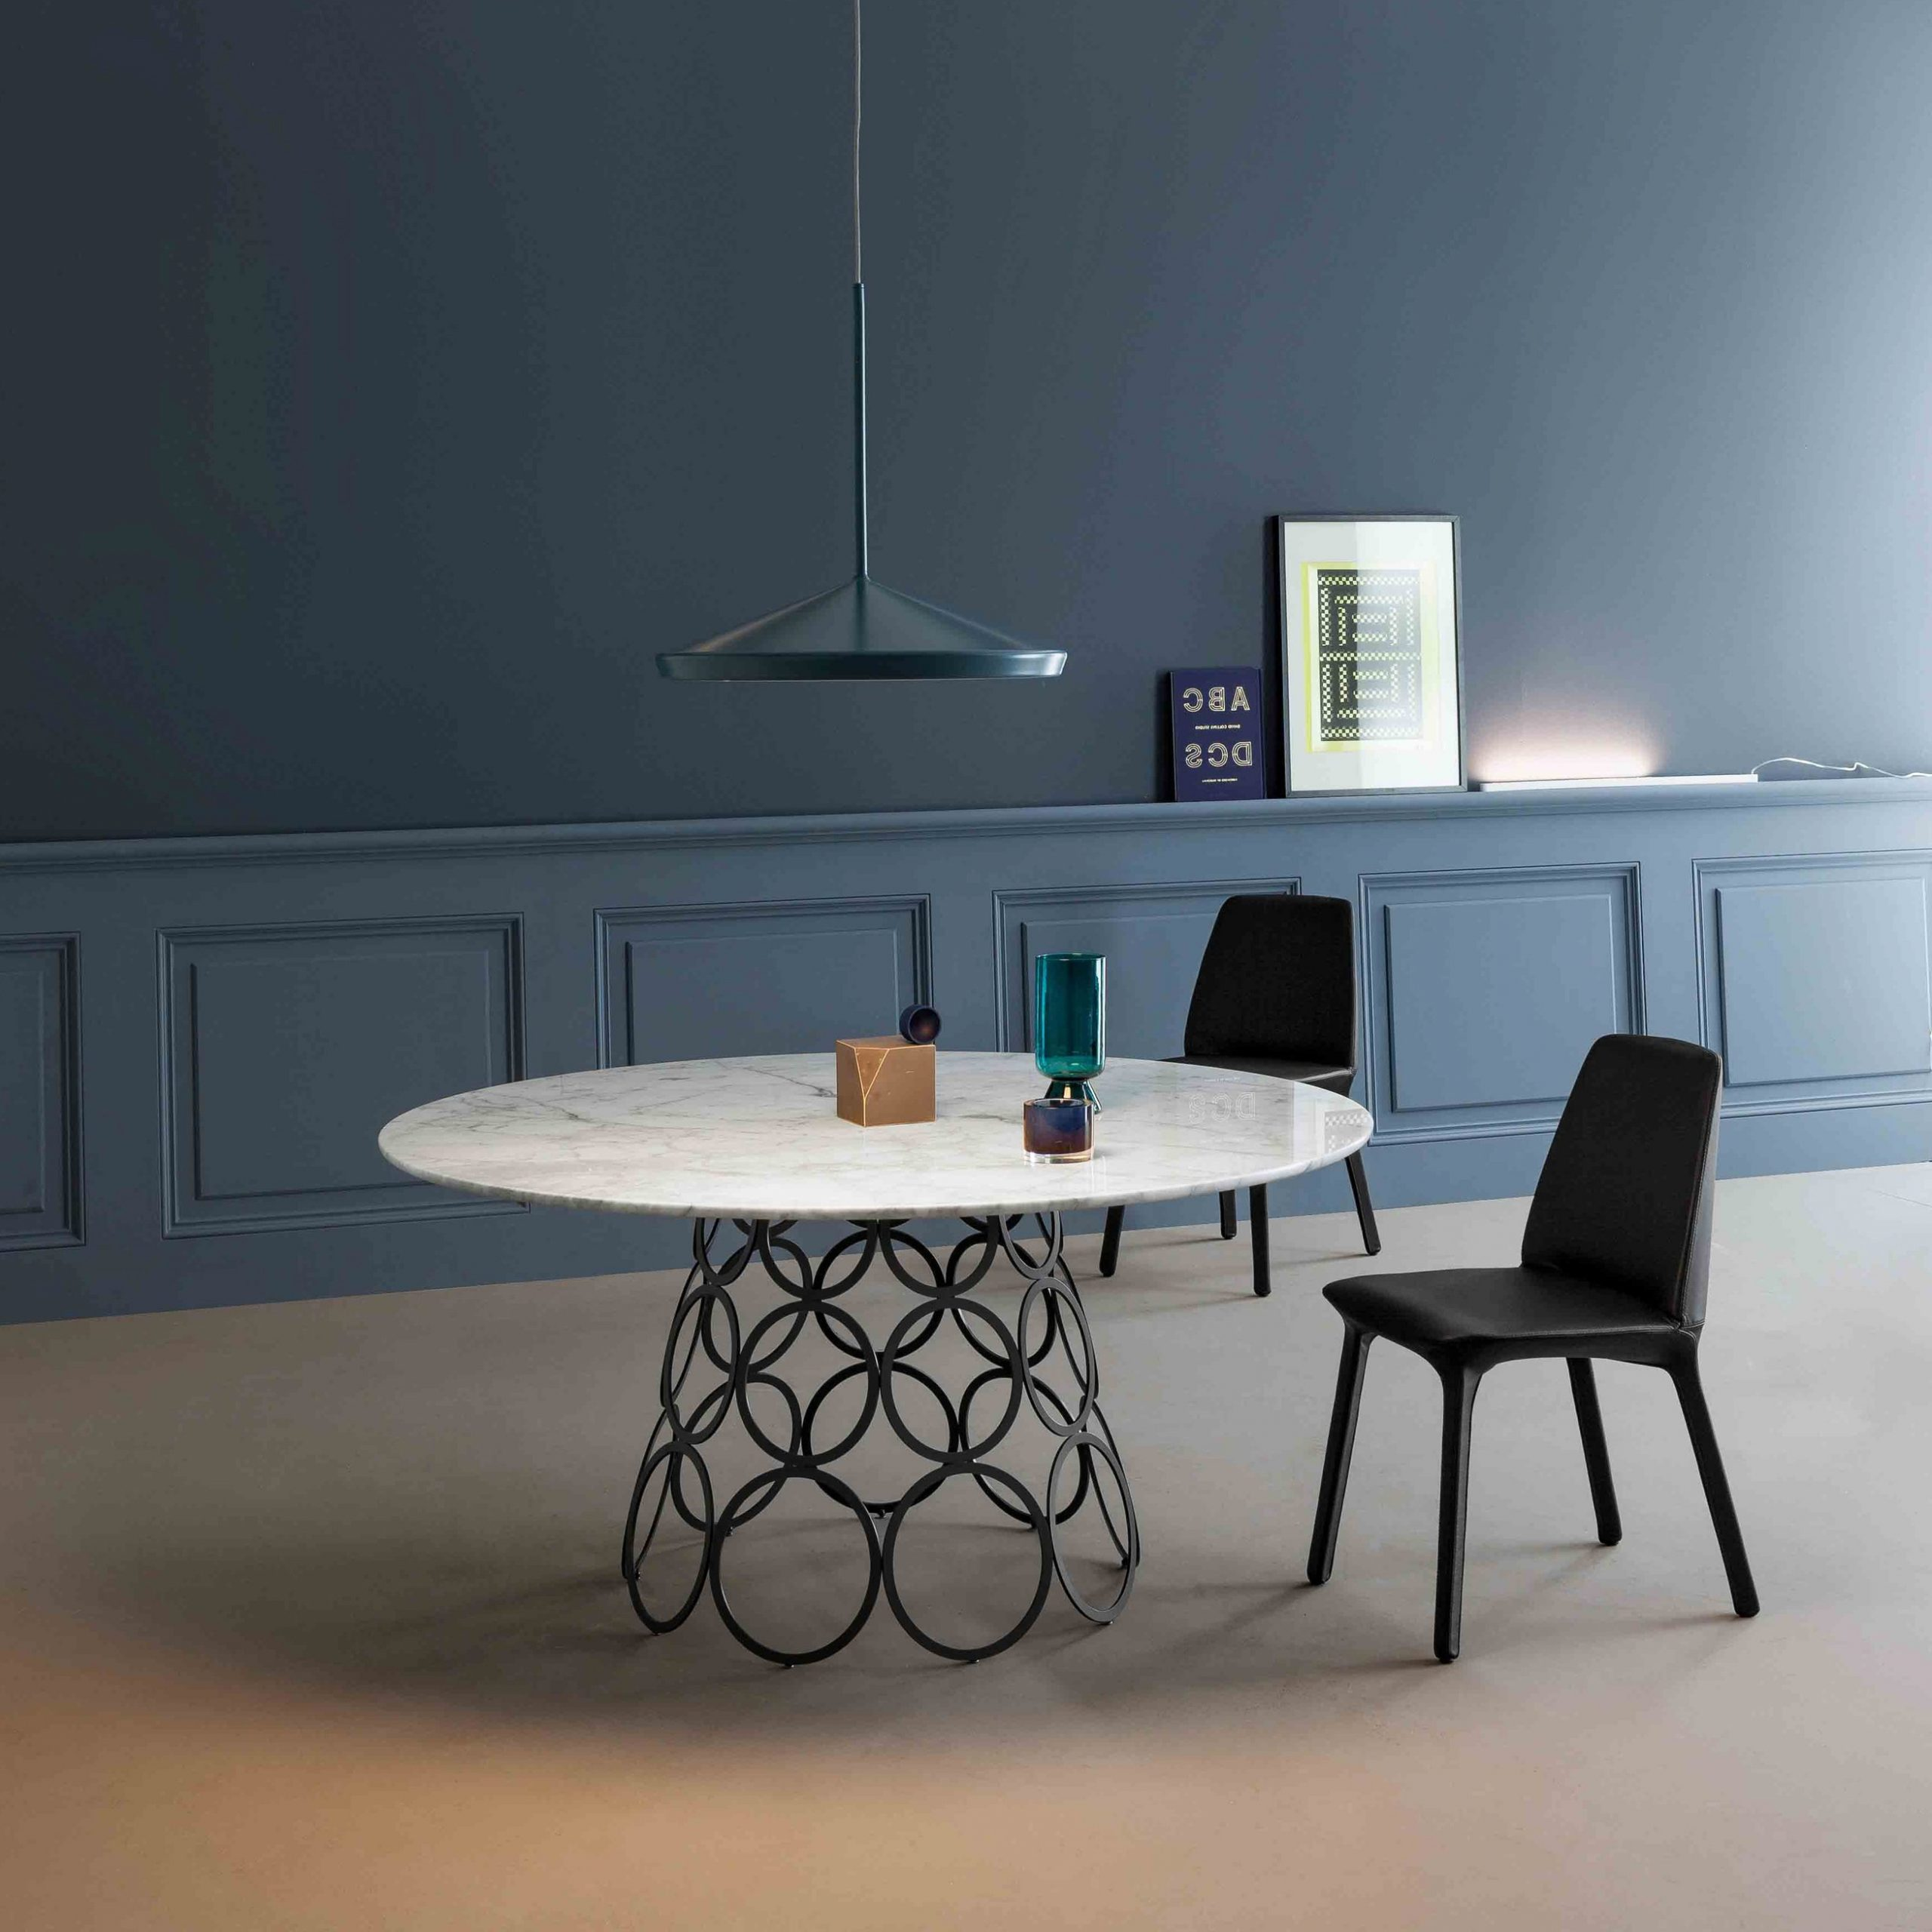 Neo Round Dining Tables with Most Up-to-Date Hulahoop Round Dining Table, Bonaldo Italy - Neo Furniture